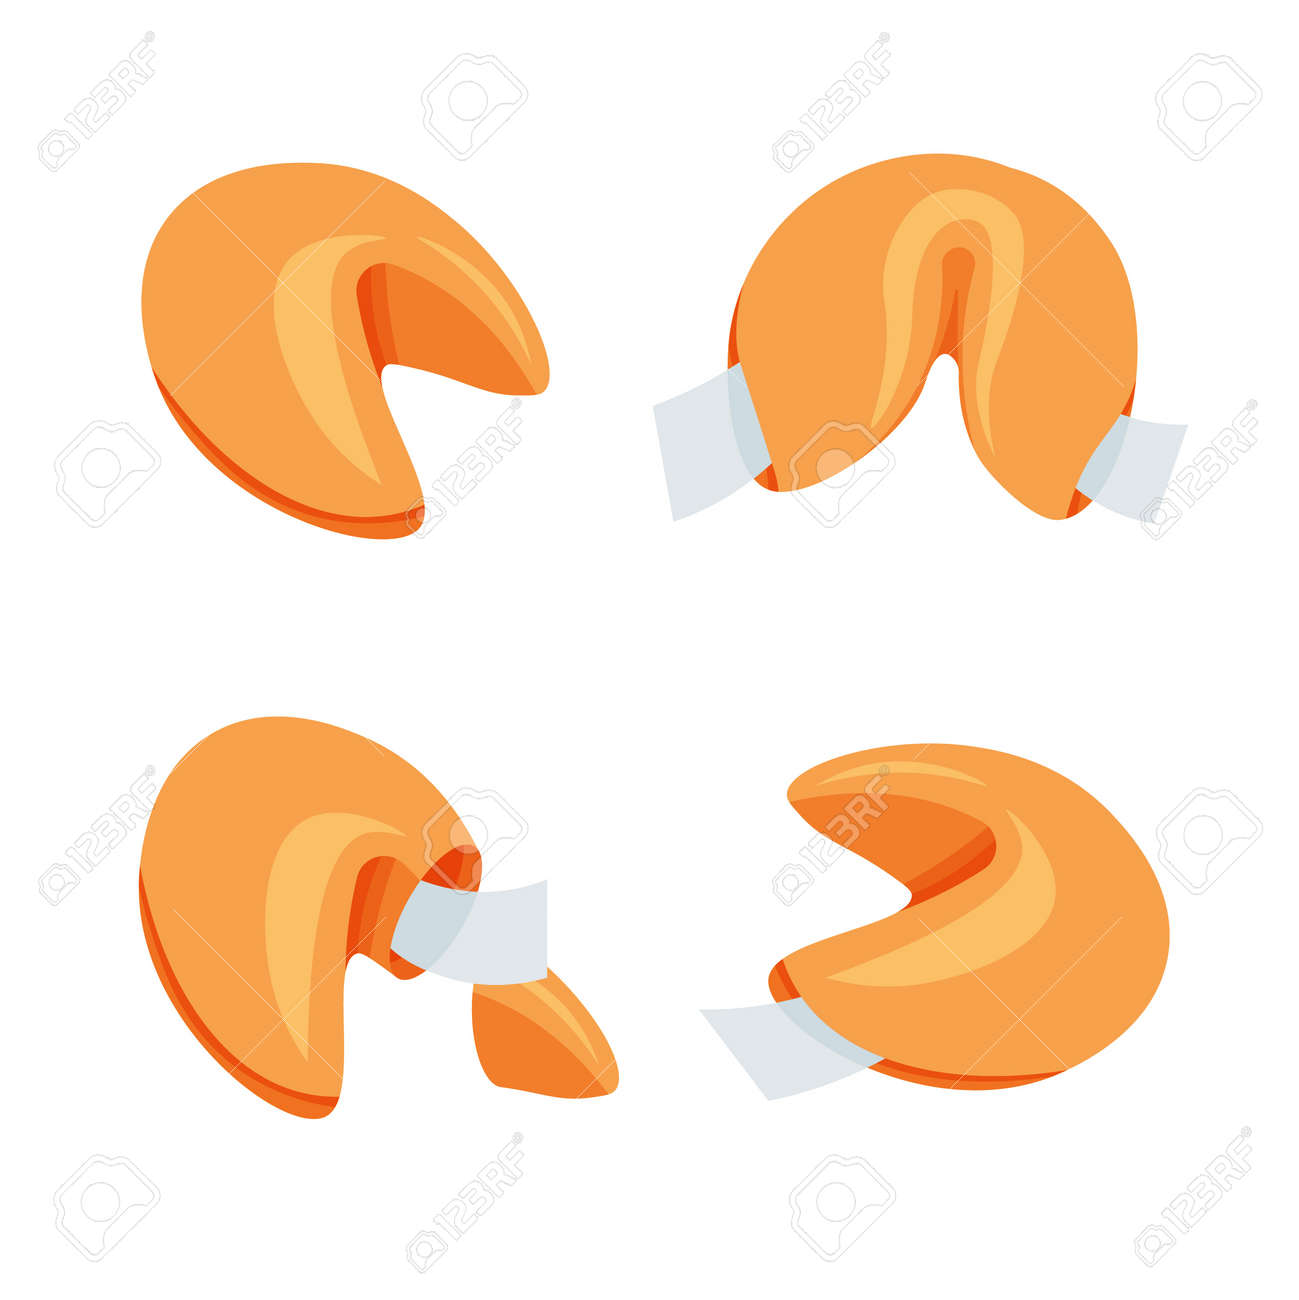 Open and closed Chinese fortune cookies in trendy flat style. Vector illustration isolated on white background. - 167217062